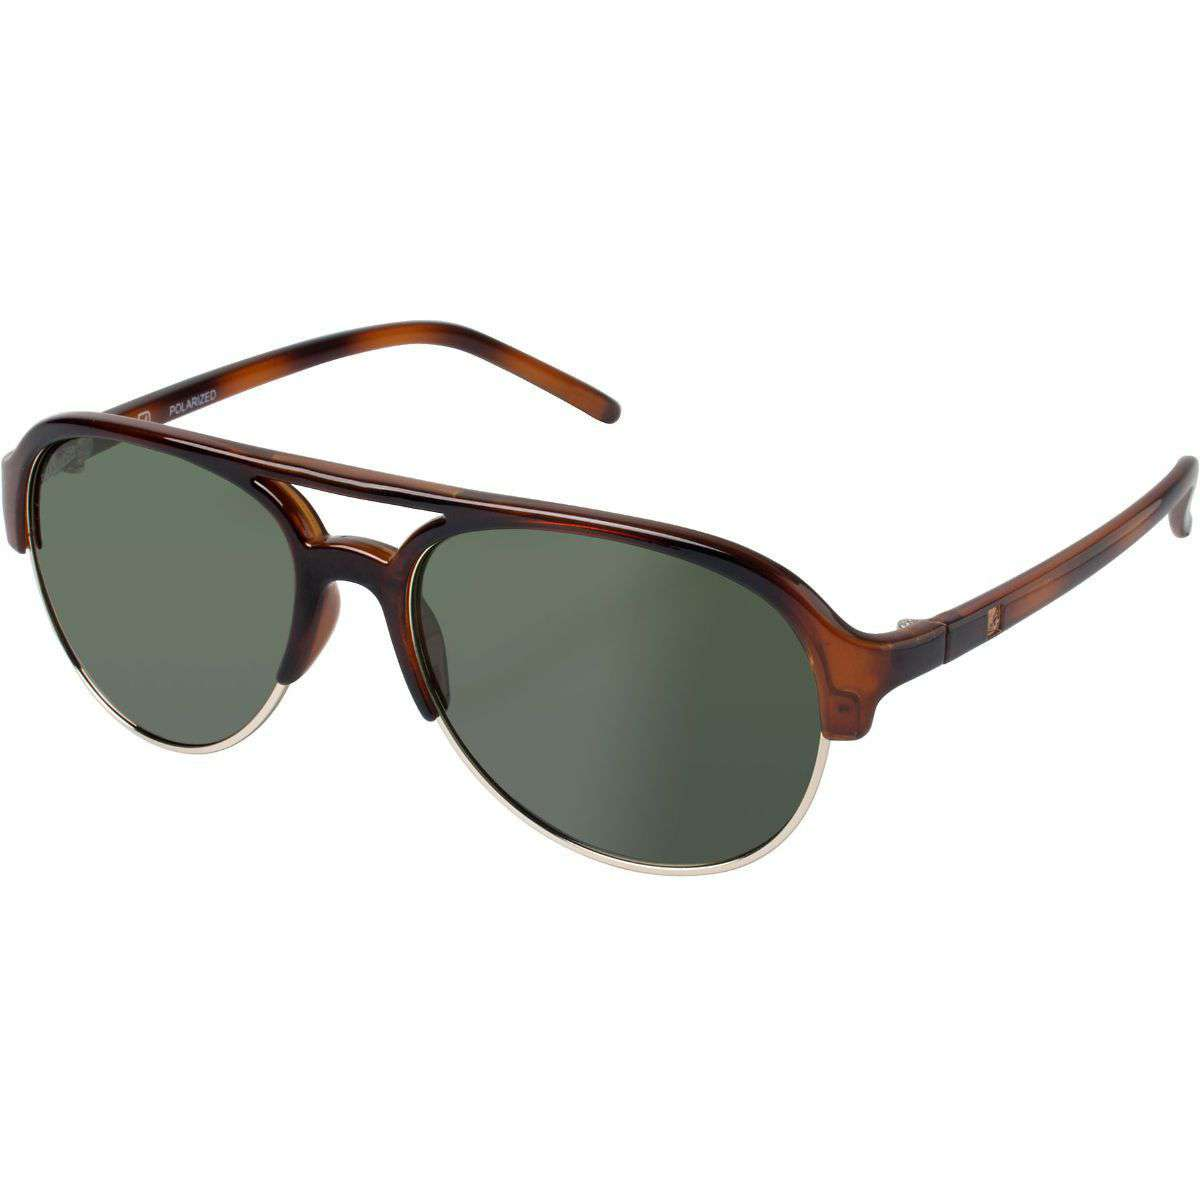 b05085d0d0 Sperry Sussex Polarized Sunglasses in Tortoise and Gold – Country Club Prep